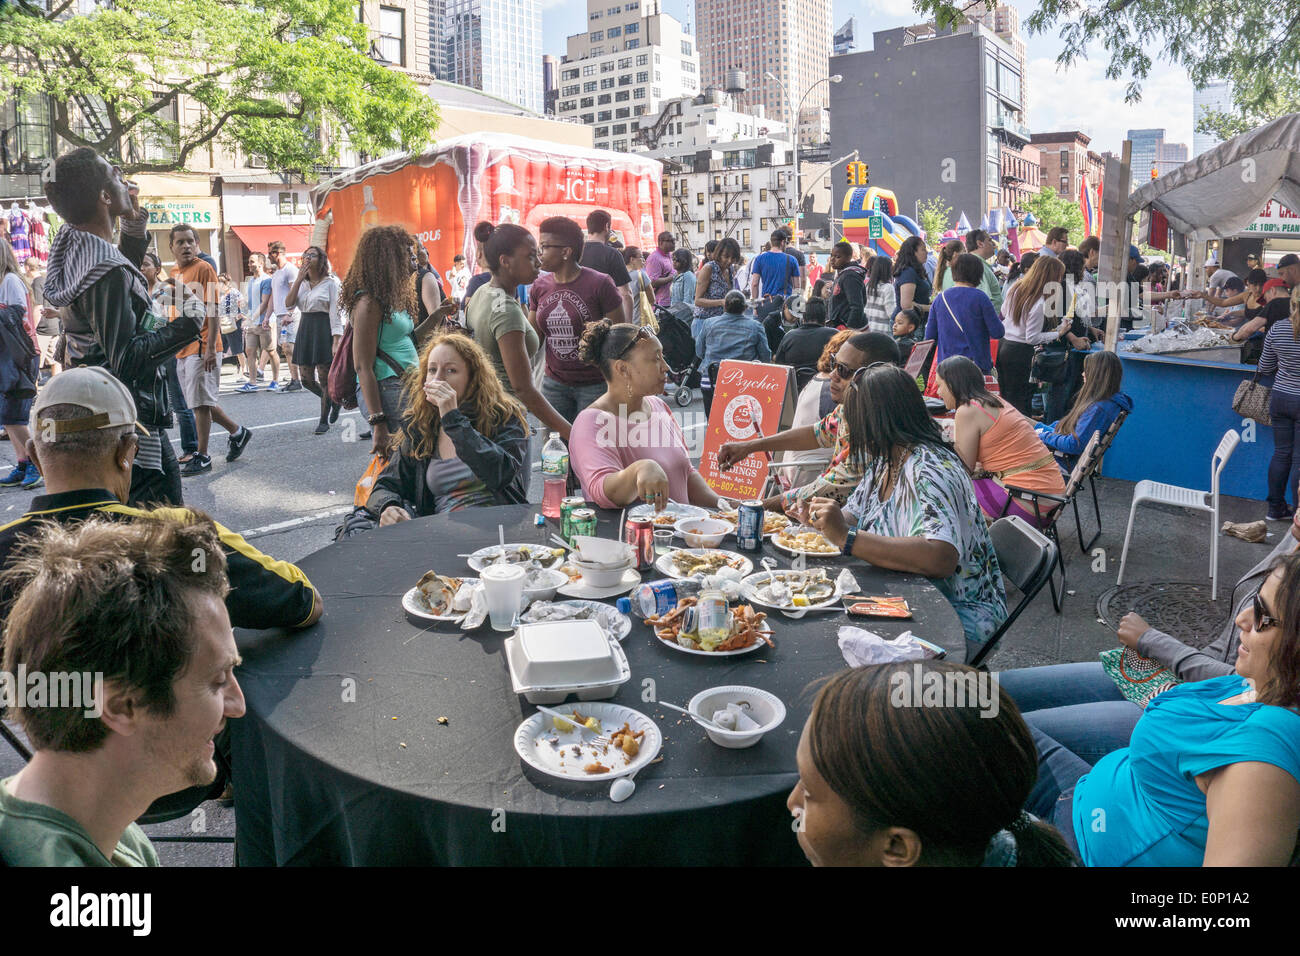 Hells Kitchen, New York City, Saturday, May 17 2014, USA: view of the crowd on opening day of 2 day weekend 9th Avenue International Food Festival. Inaugurated in 1973, the festival extends from 57th to 42nd street along Ninth Avenue in New York's Hells Kitchen neighborhood. Credit:  Dorothy Alexander/Alamy Live News - Stock Image